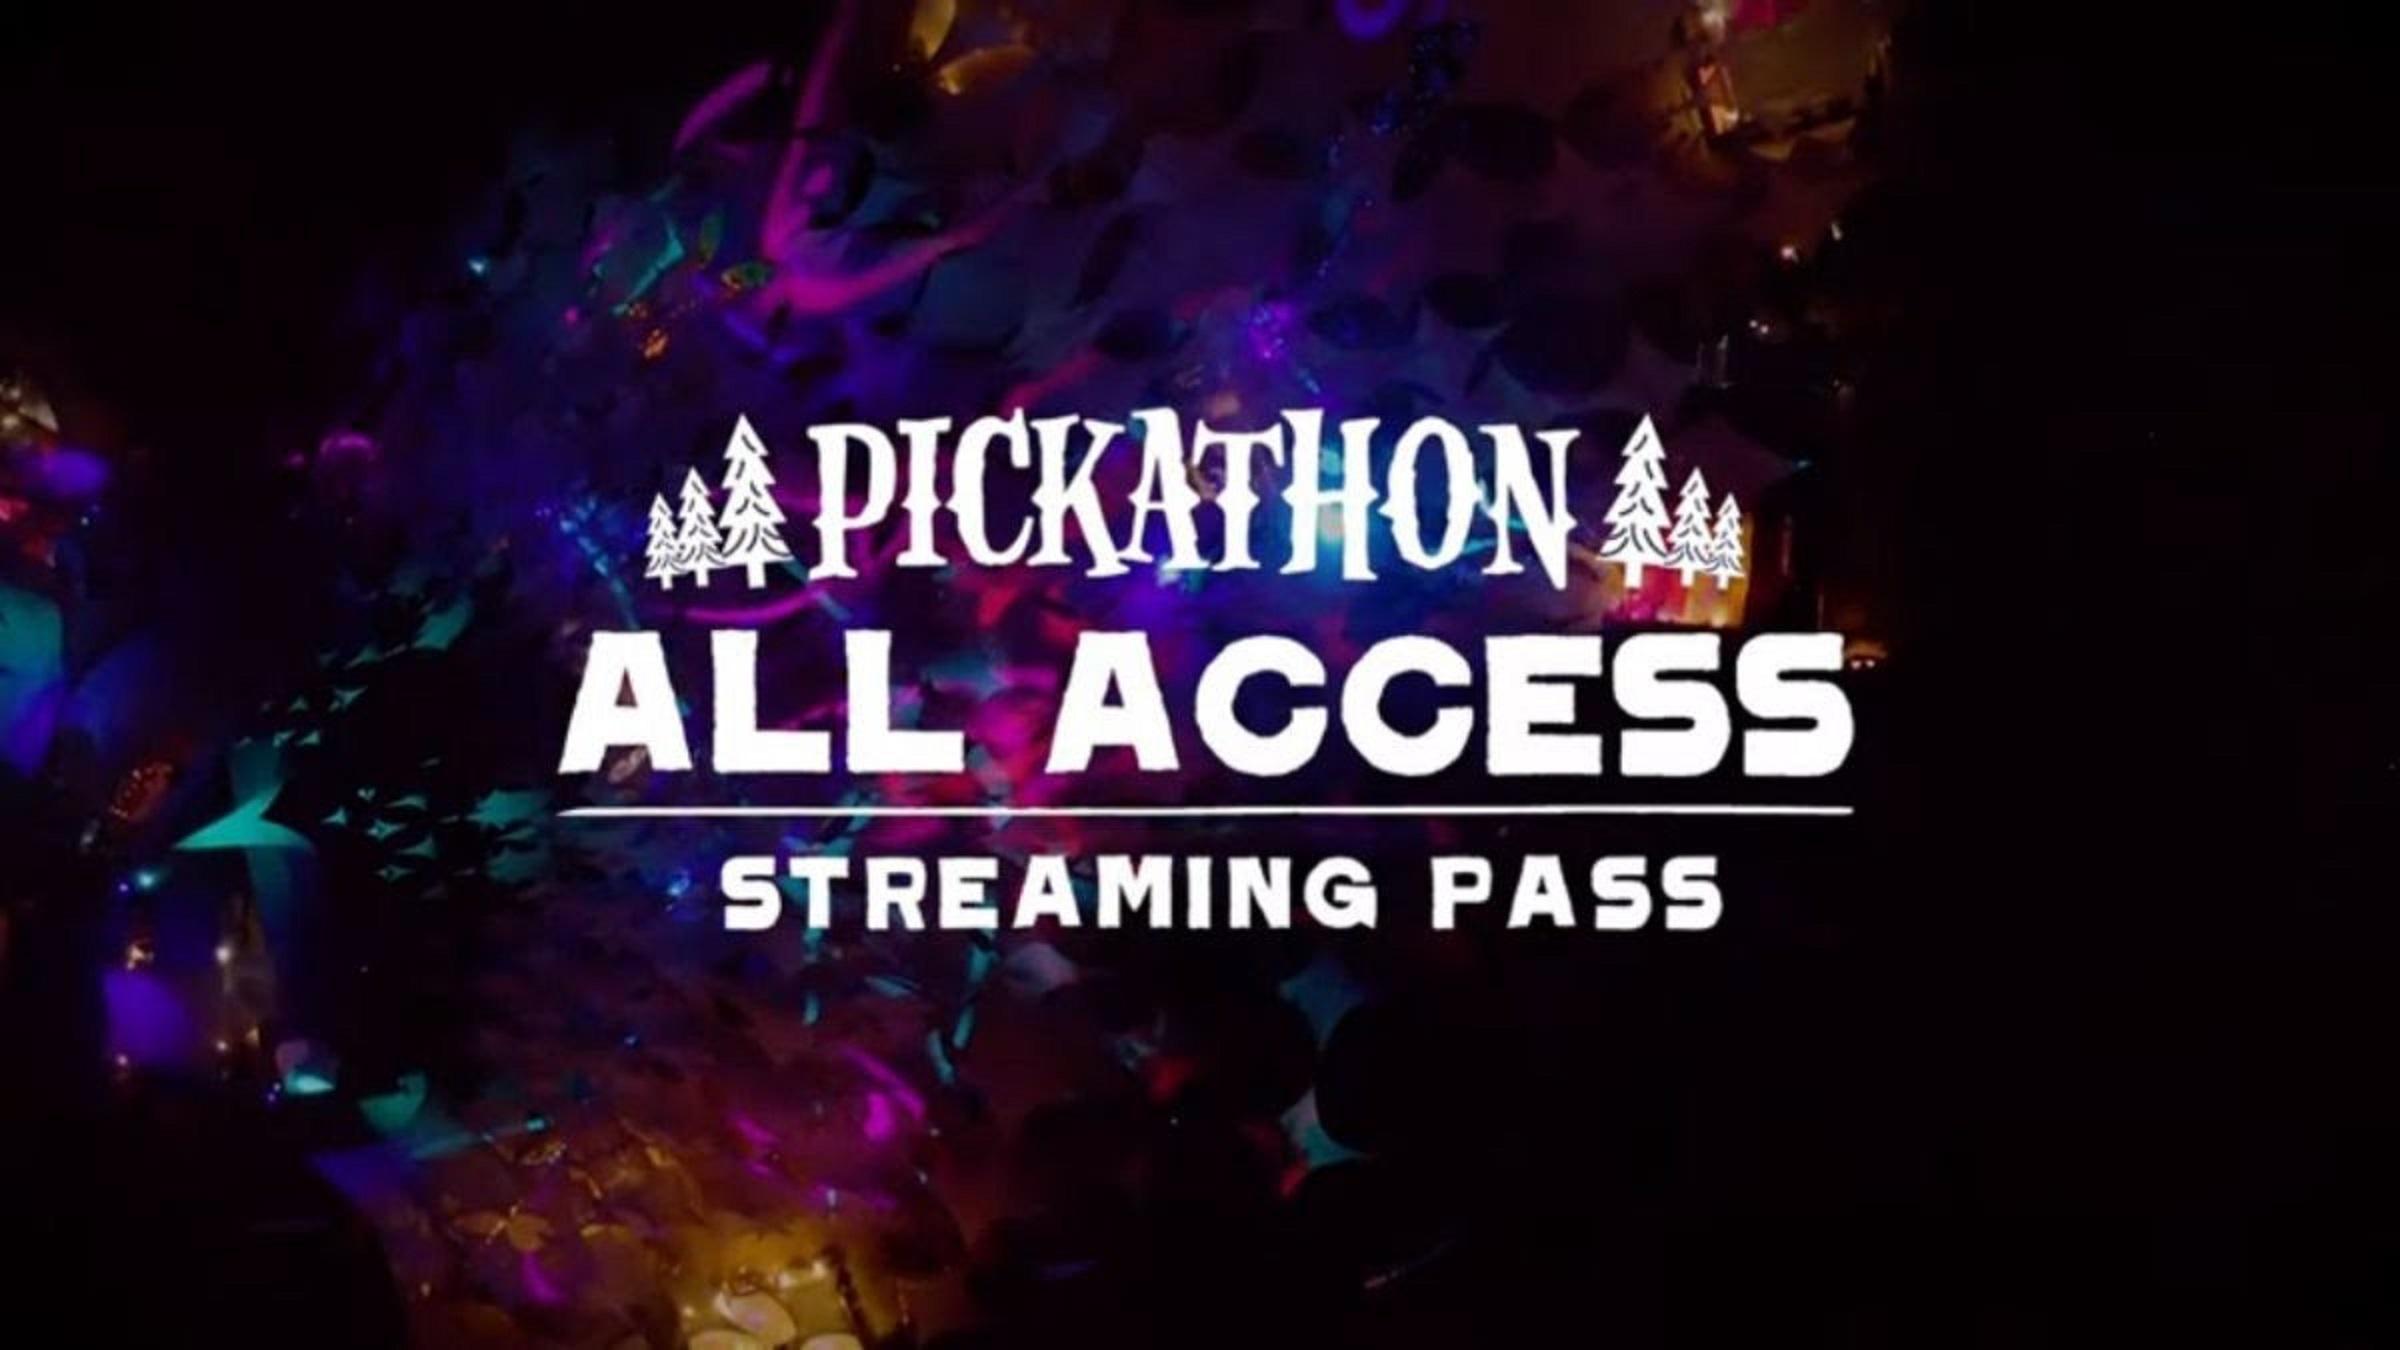 Pickathon (Aug 1-4) Announces All-Access Streaming Pass